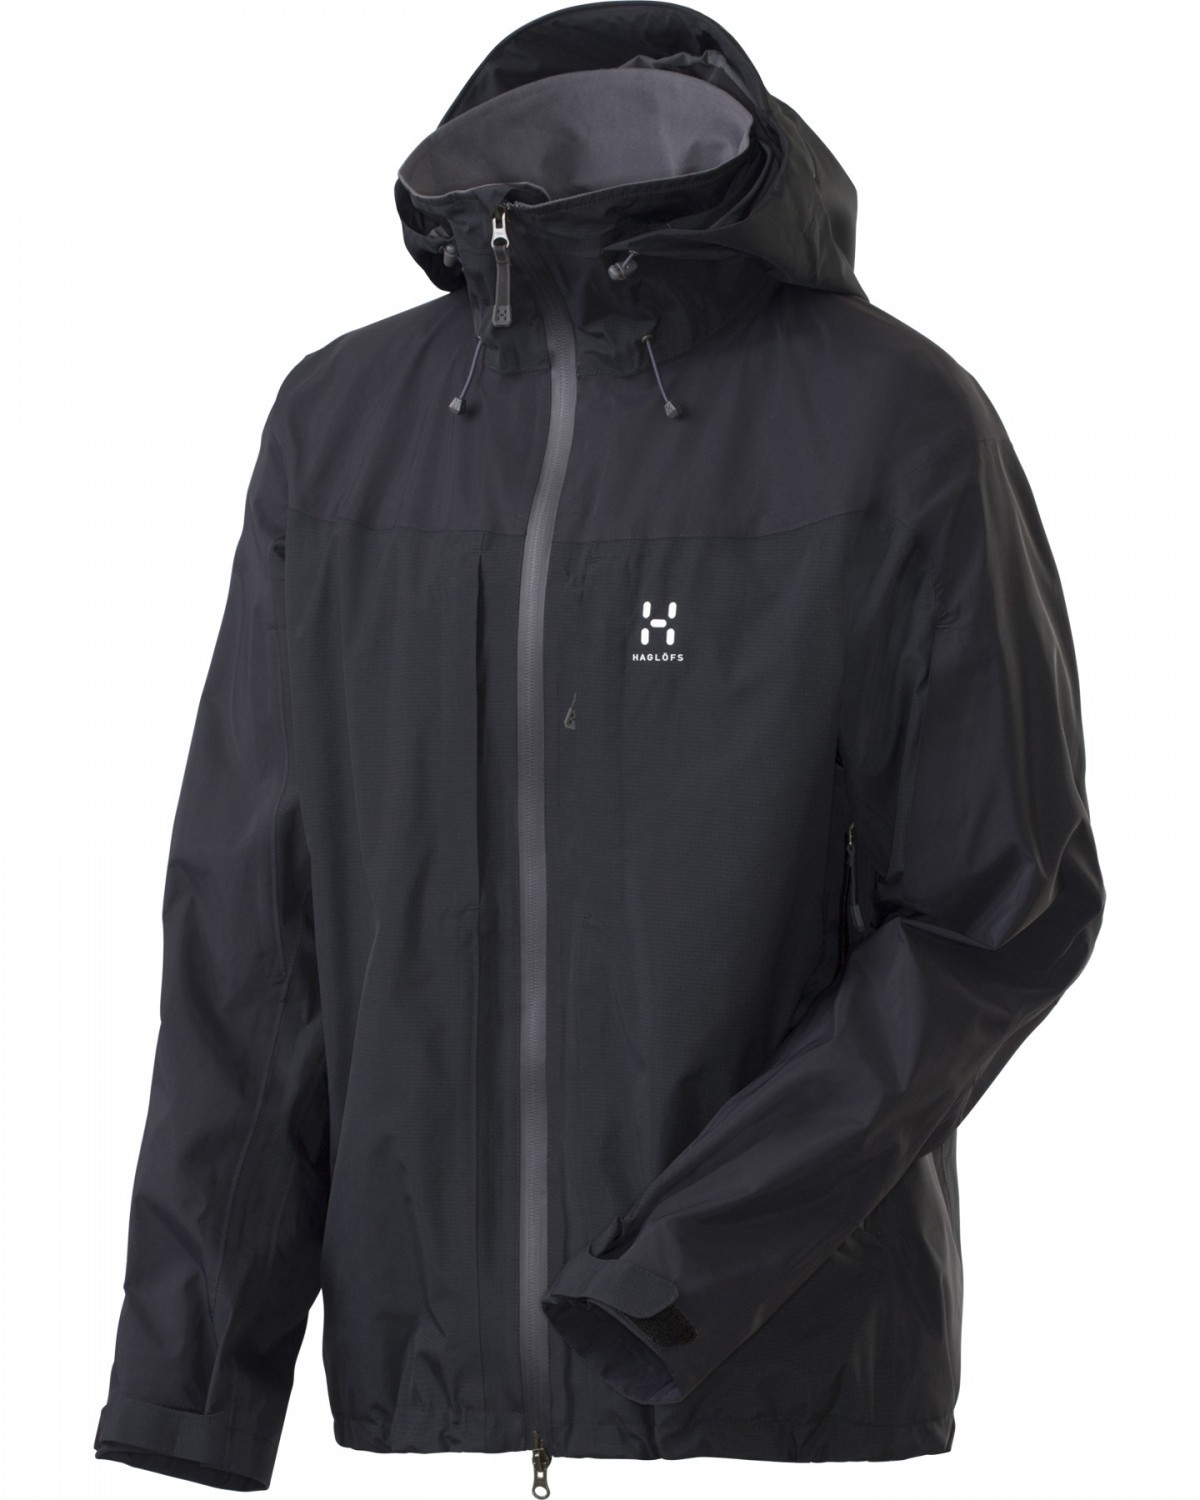 Haglofs Skra Jacket True Black-30